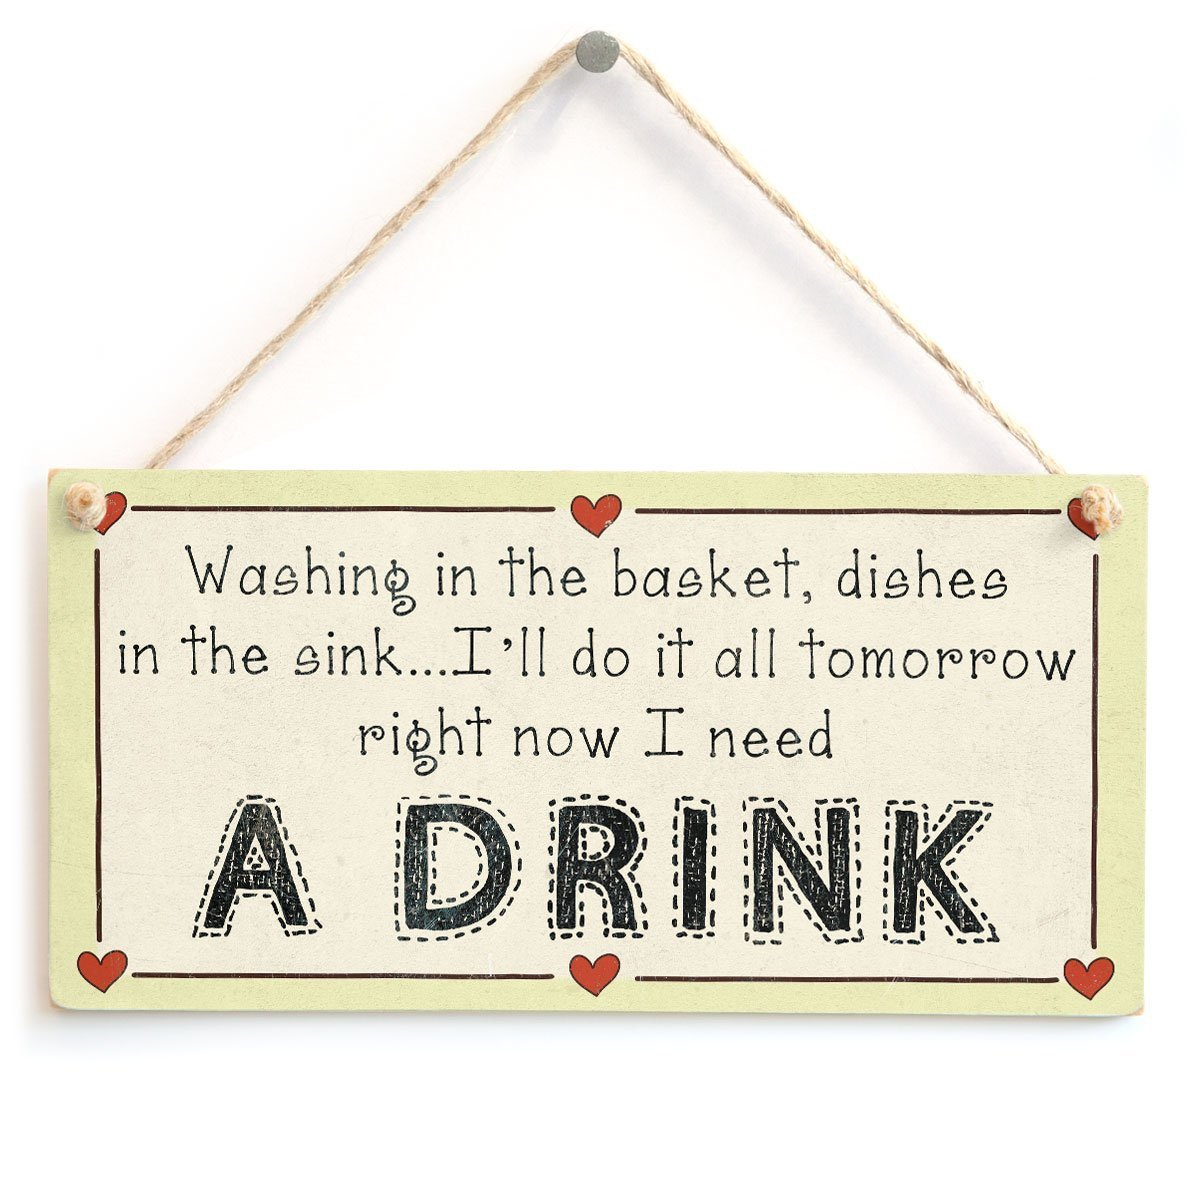 Beautiful and Funny Laundry and Housework Home Accessory Gift Sign 10x5 Right Now I Need a Drink Dishes in The Sink Ill do it All Tomorrow Meijiafei Washing in The Basket